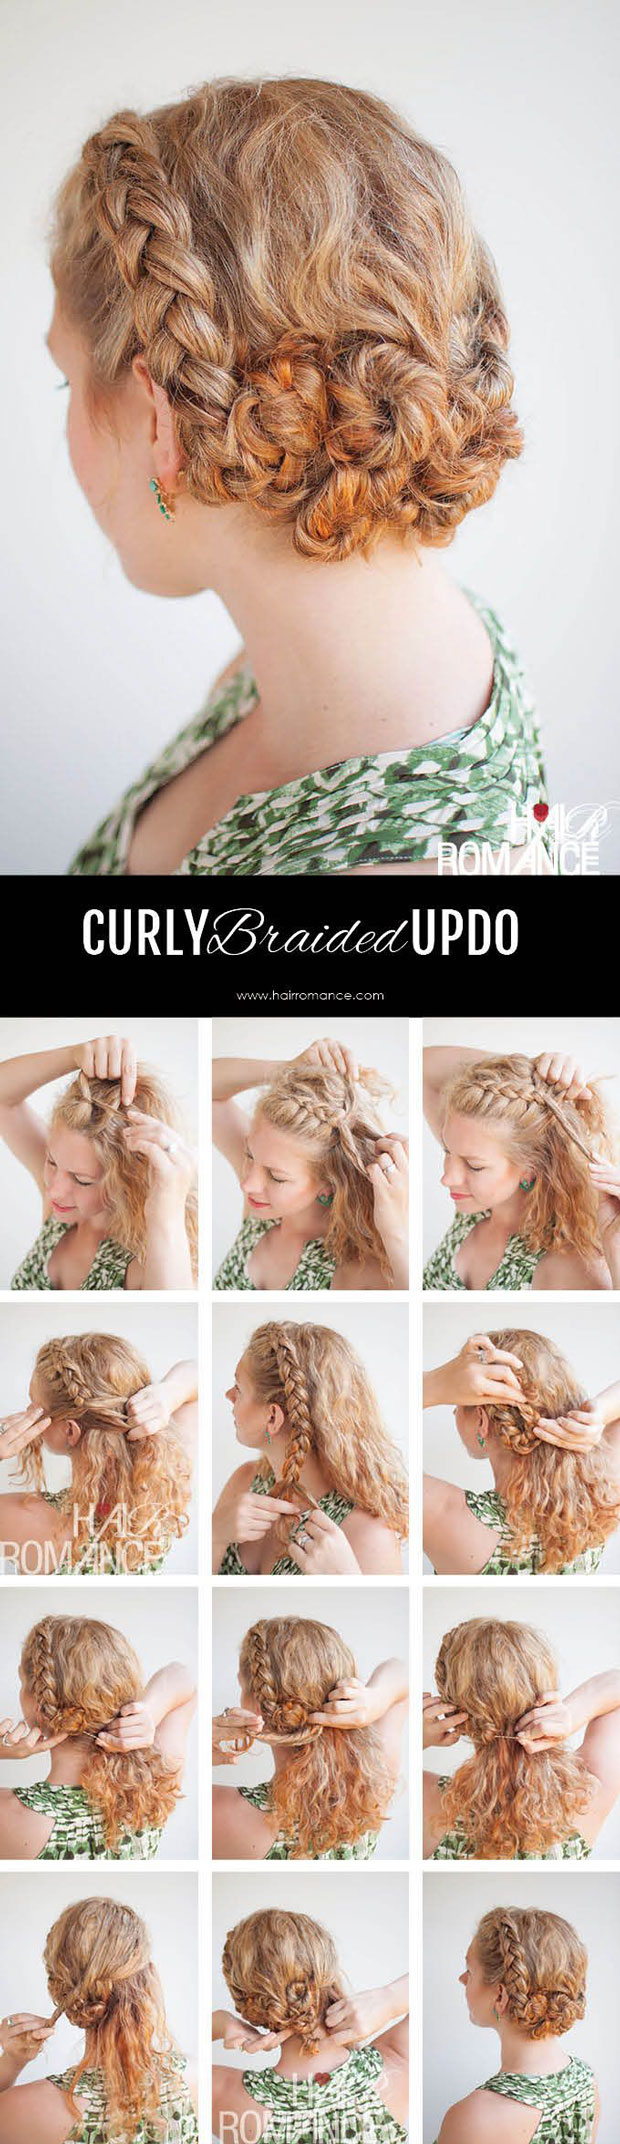 Easy Braids For Curly Hair The Fashion Spot